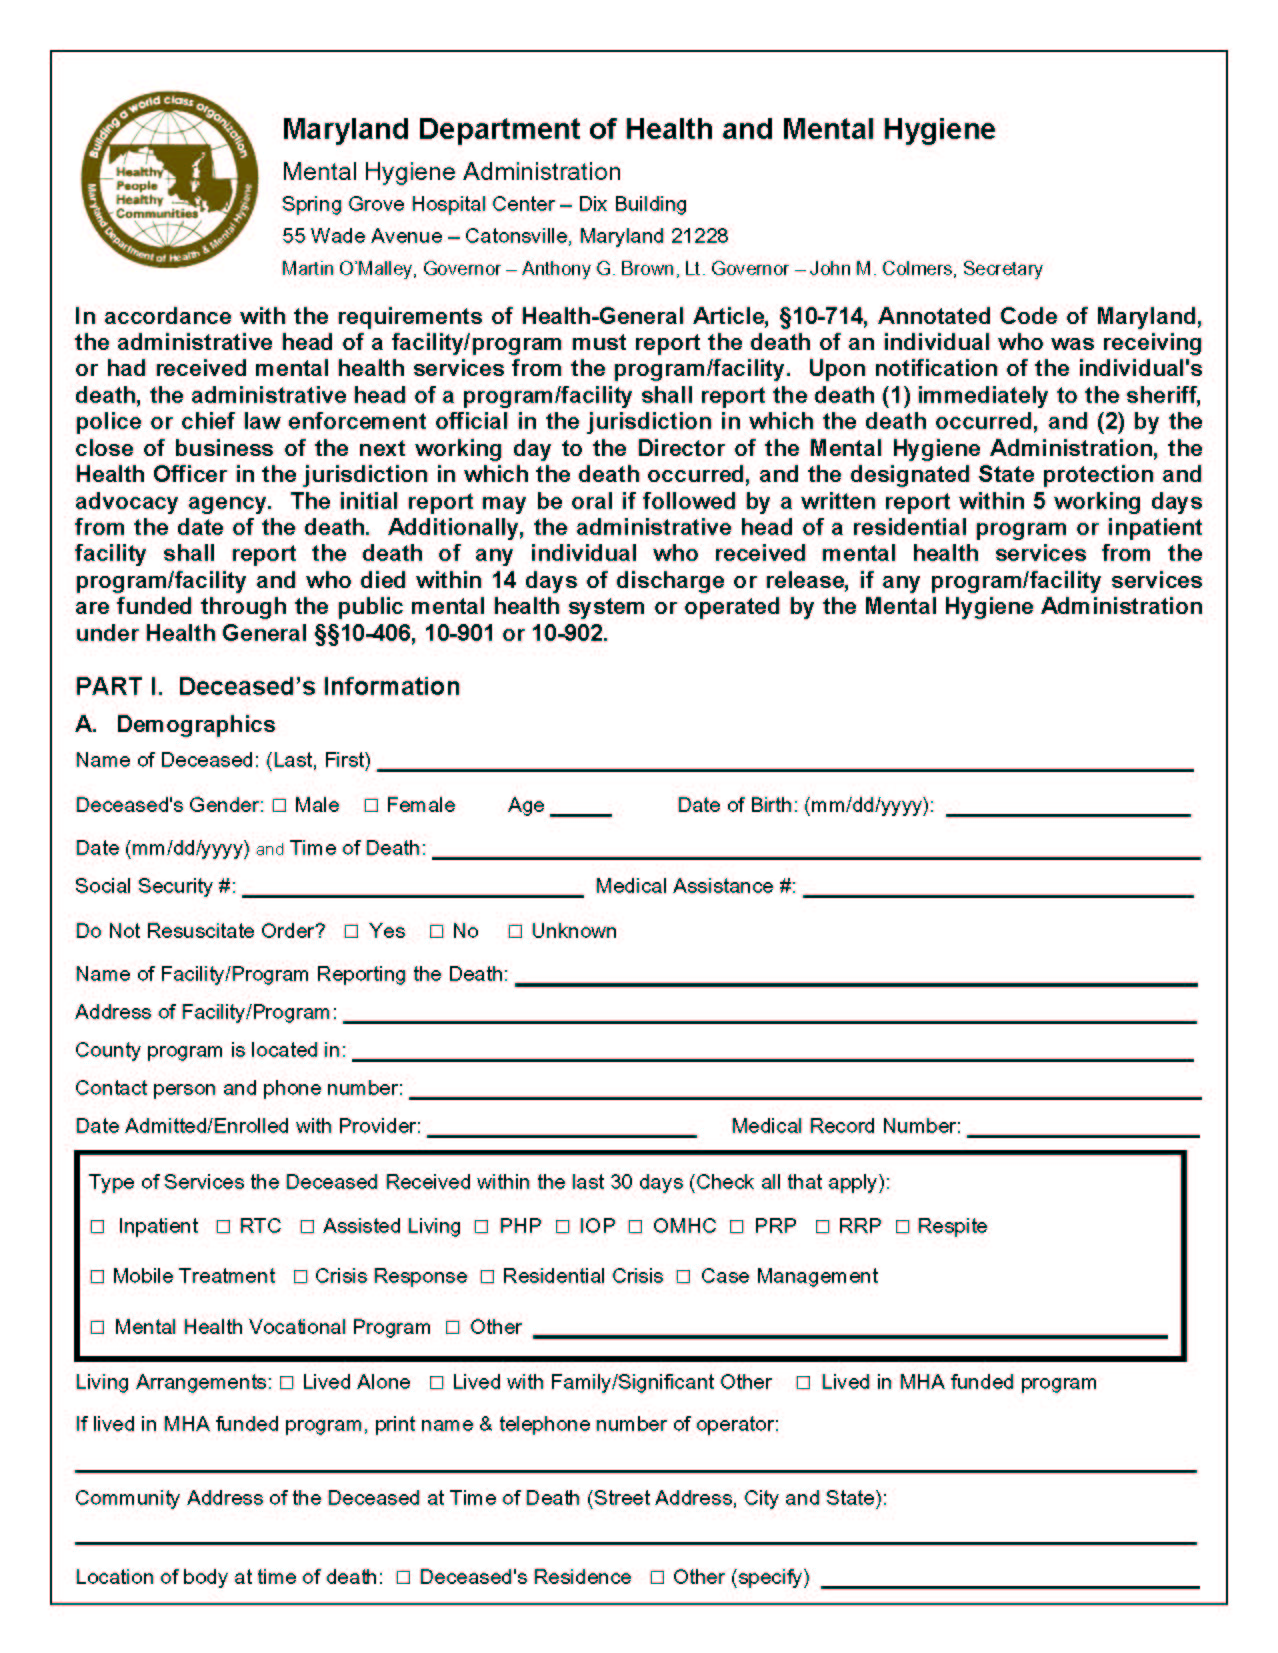 Anne Arundel County Mental Health Agency Inc » Forms